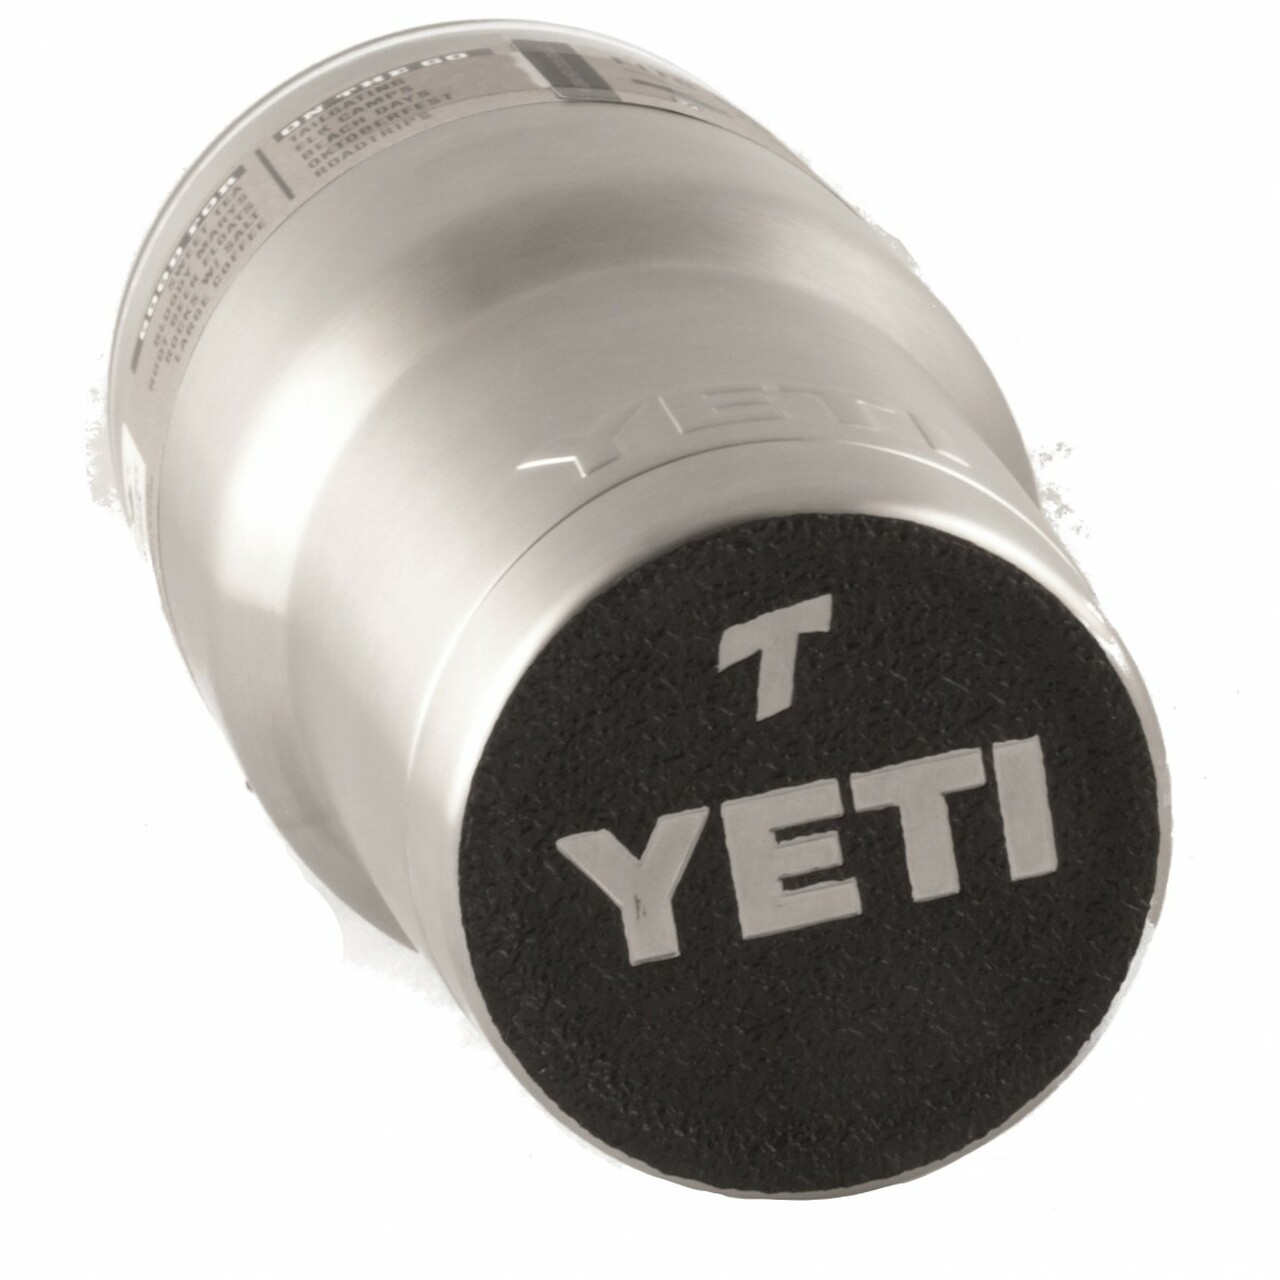 Talon Grips Gripster For Yeti Ramblers And Travel Mugs